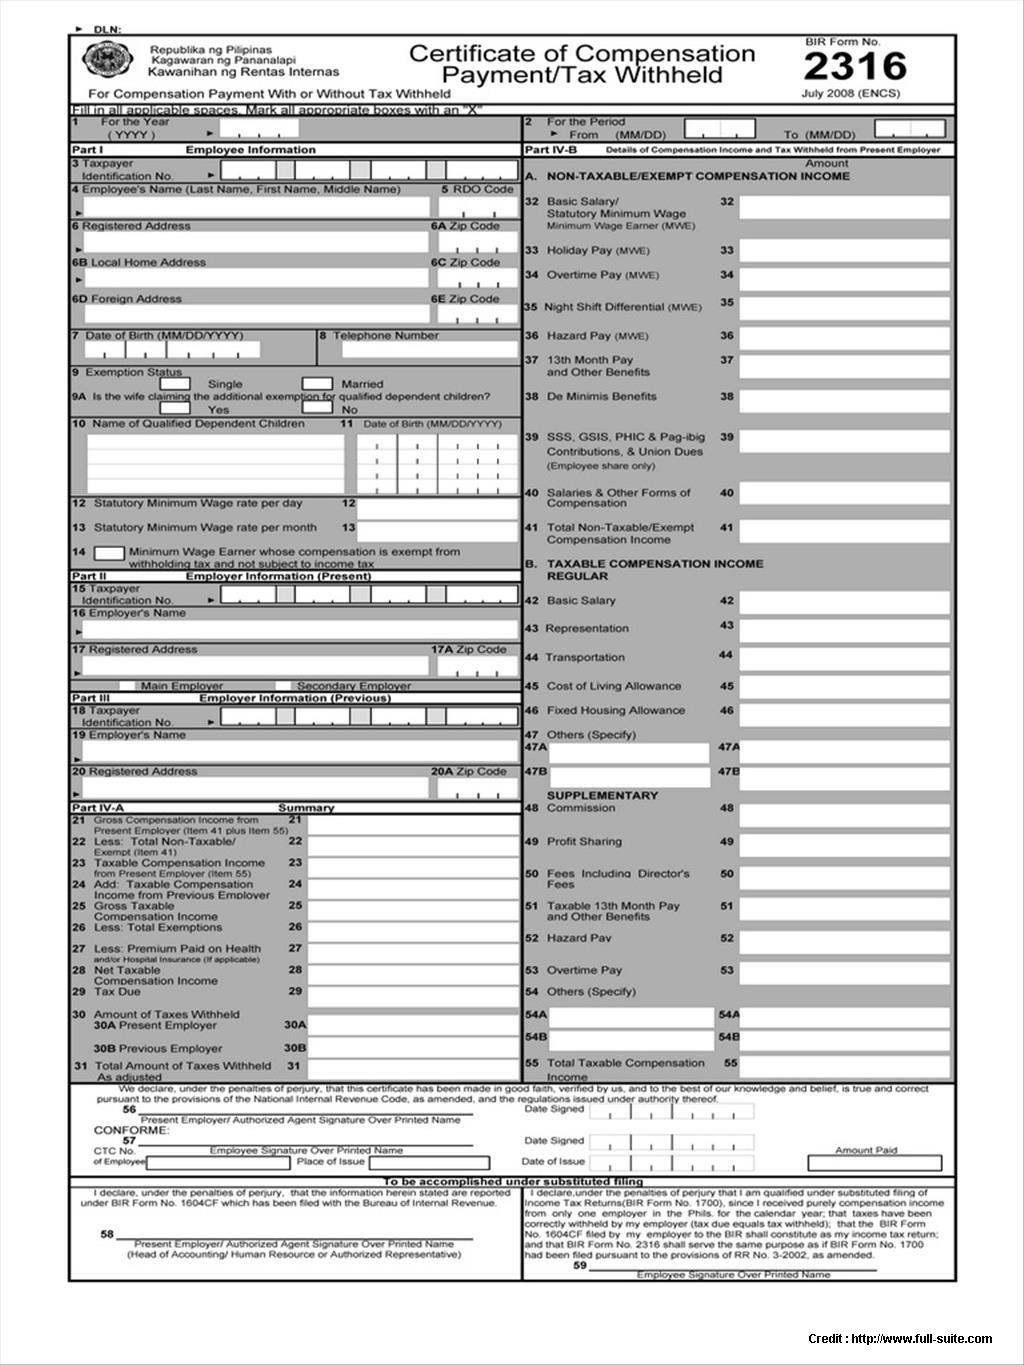 Bureau Of Internal Revenue Form 2316